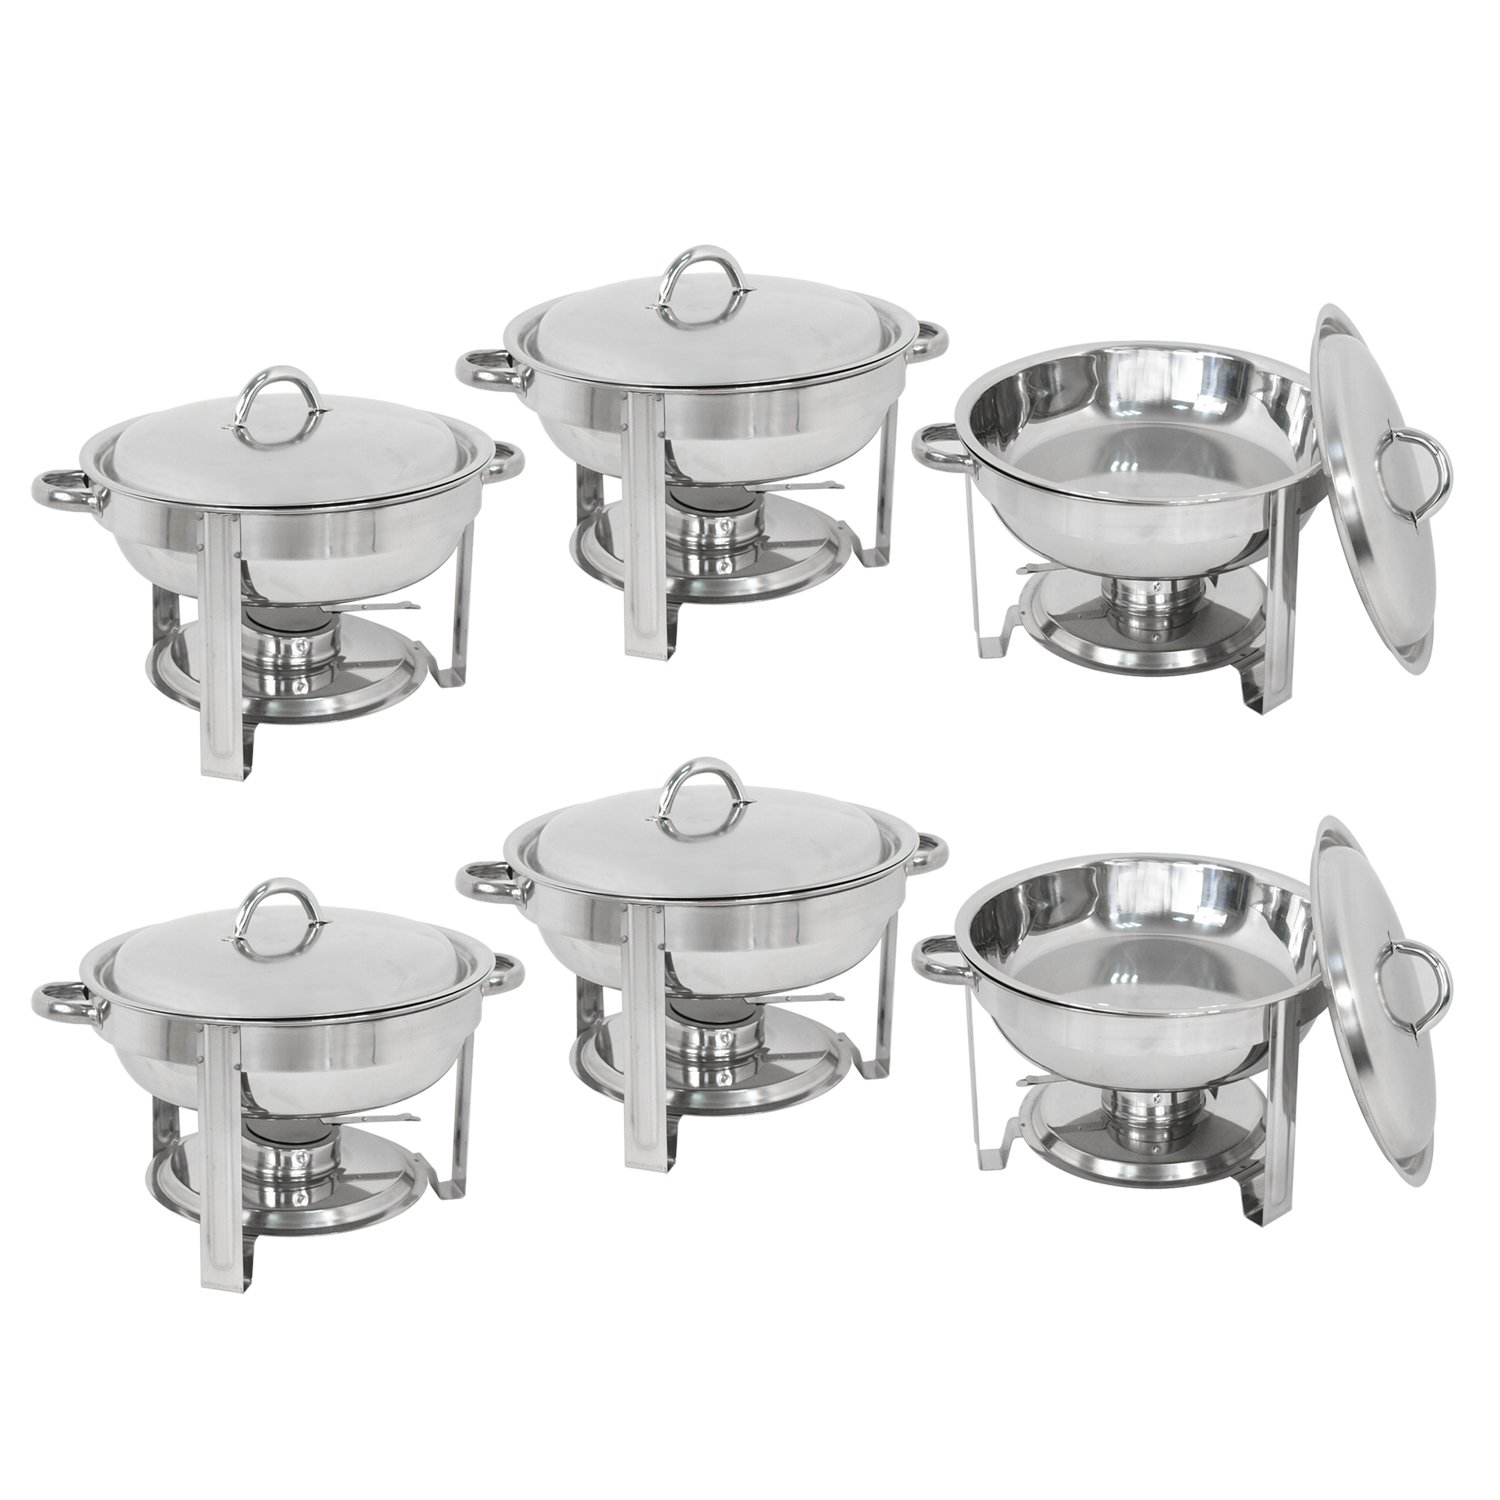 Deluxe Stainless Steel Chafing Dish Round Chafer with Lid 5 Quart,Dinner Serving Buffet Warmer Full Size (6)